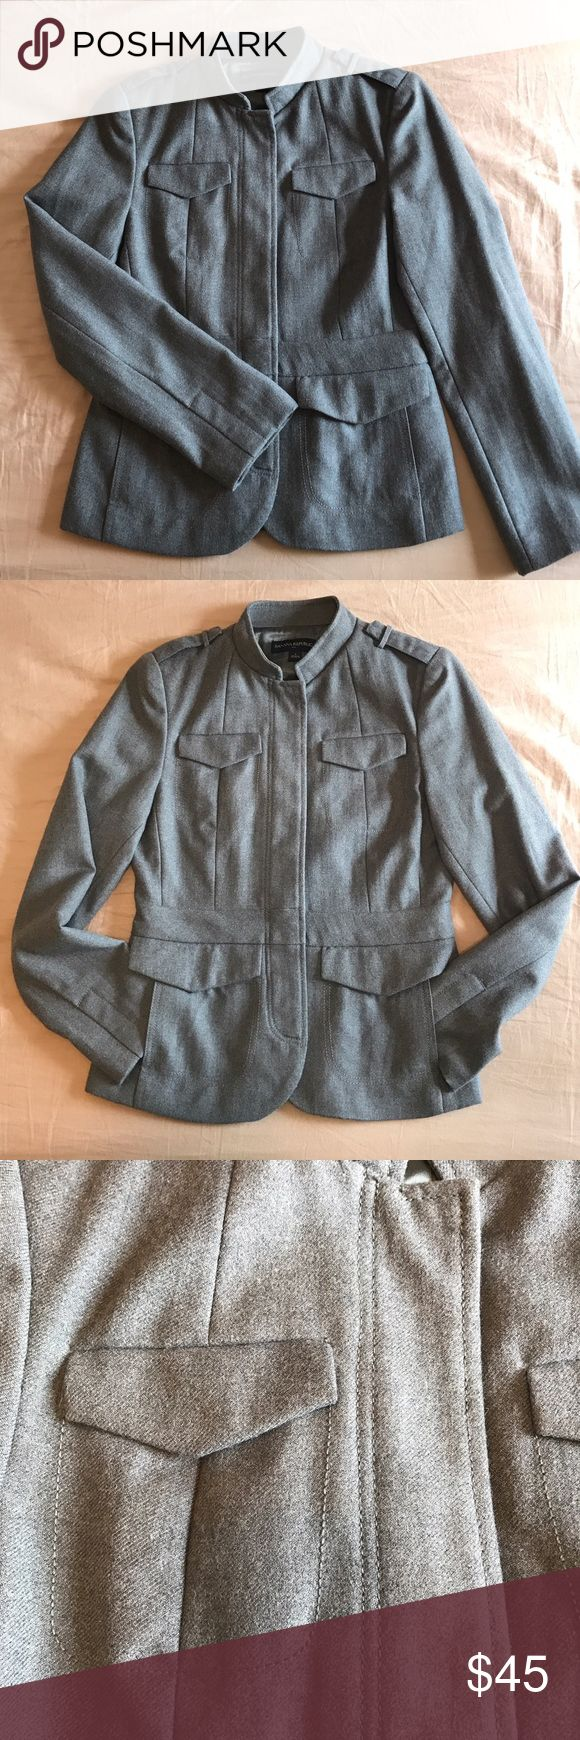 Banana Republic Wool Blend Jacket This is a really chic grey/gray Banana Republic Wool Blend Jacket. This jacket has 2 front pockets, button front, full lining, & beautiful stitching. It is in excellent used condition, like new. Banana Republic Jackets & Coats